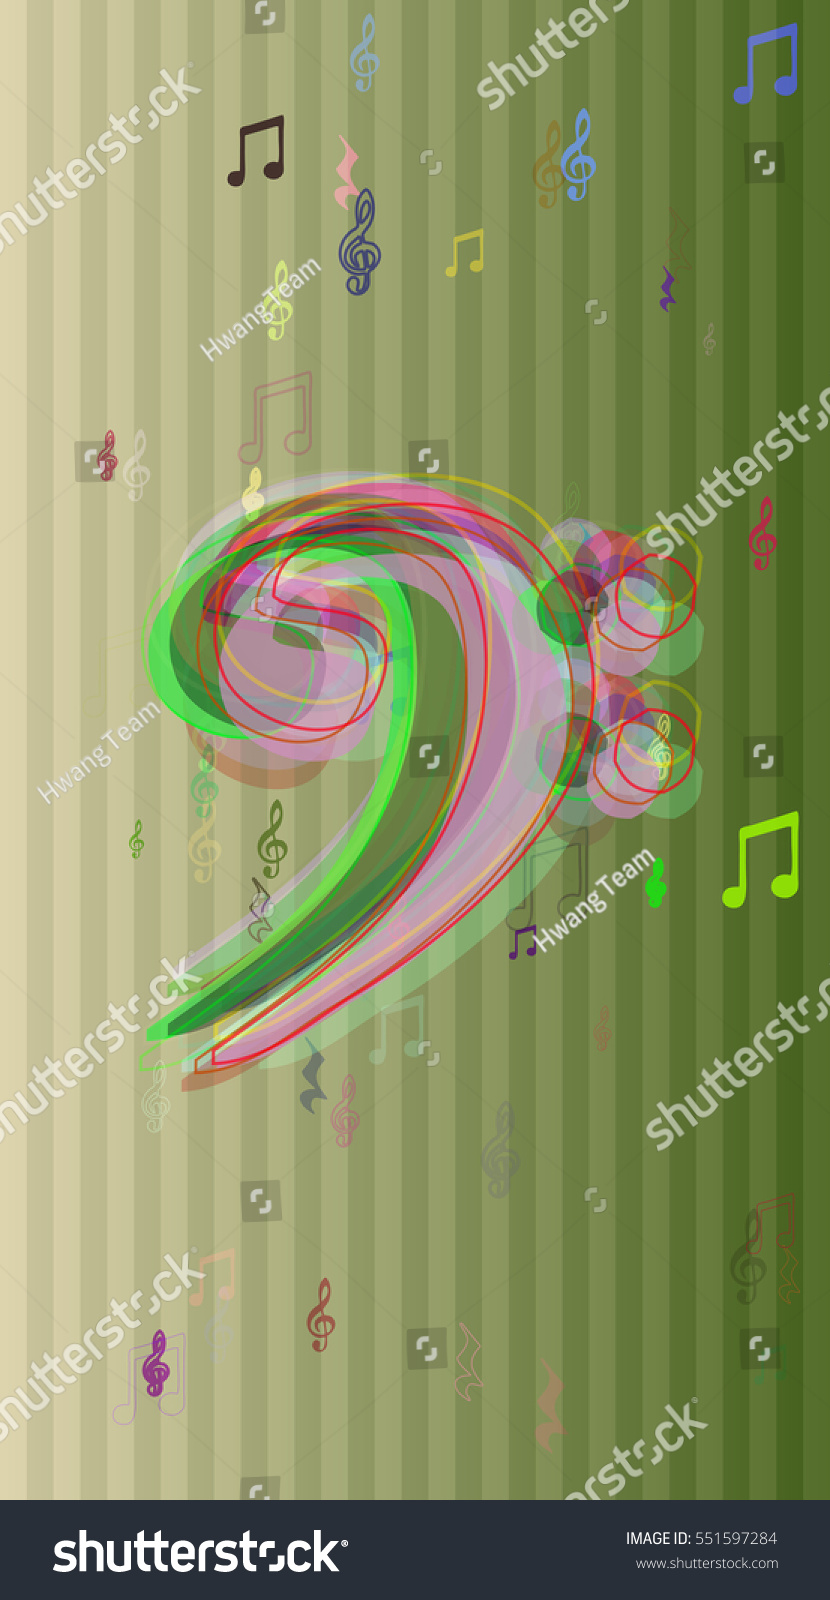 Thin Form Wallpaper Dream Above Colorful Stock Vector Royalty Free